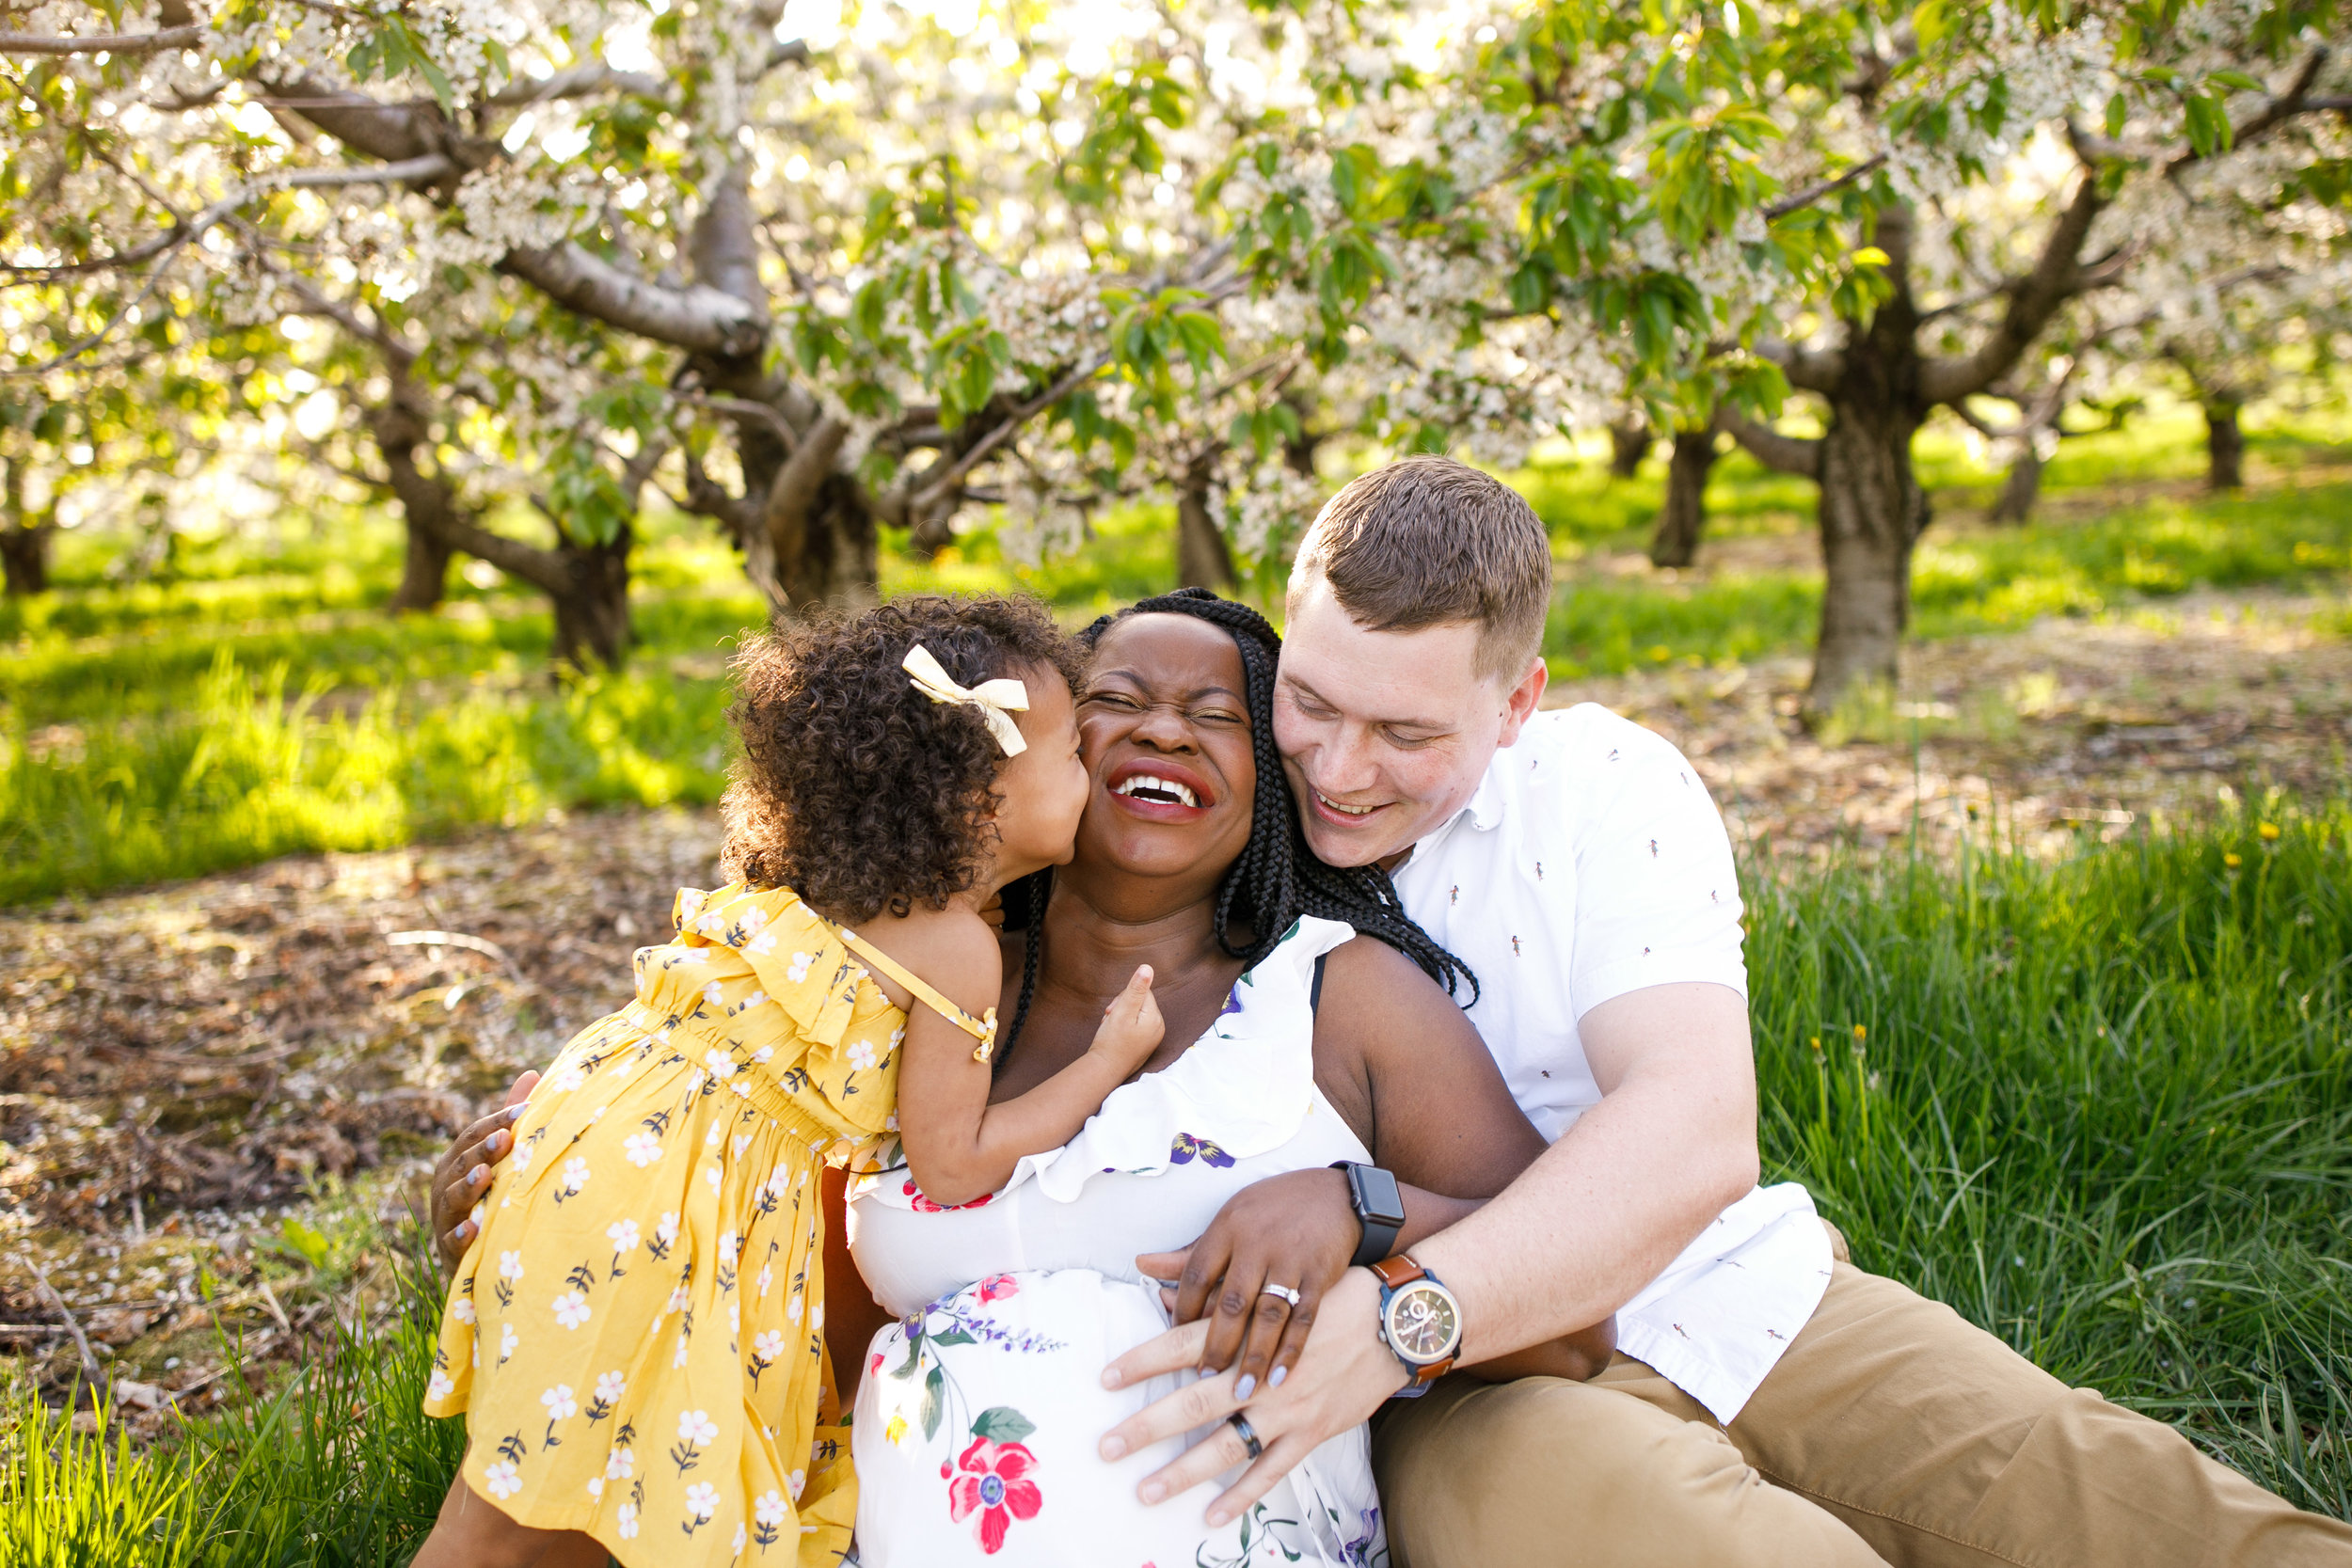 Grand Rapids family photographer - j darling photo - jessica darling - grand rapids photographer - family session - apple blossoms - sparta - michigan photographer016.jpg